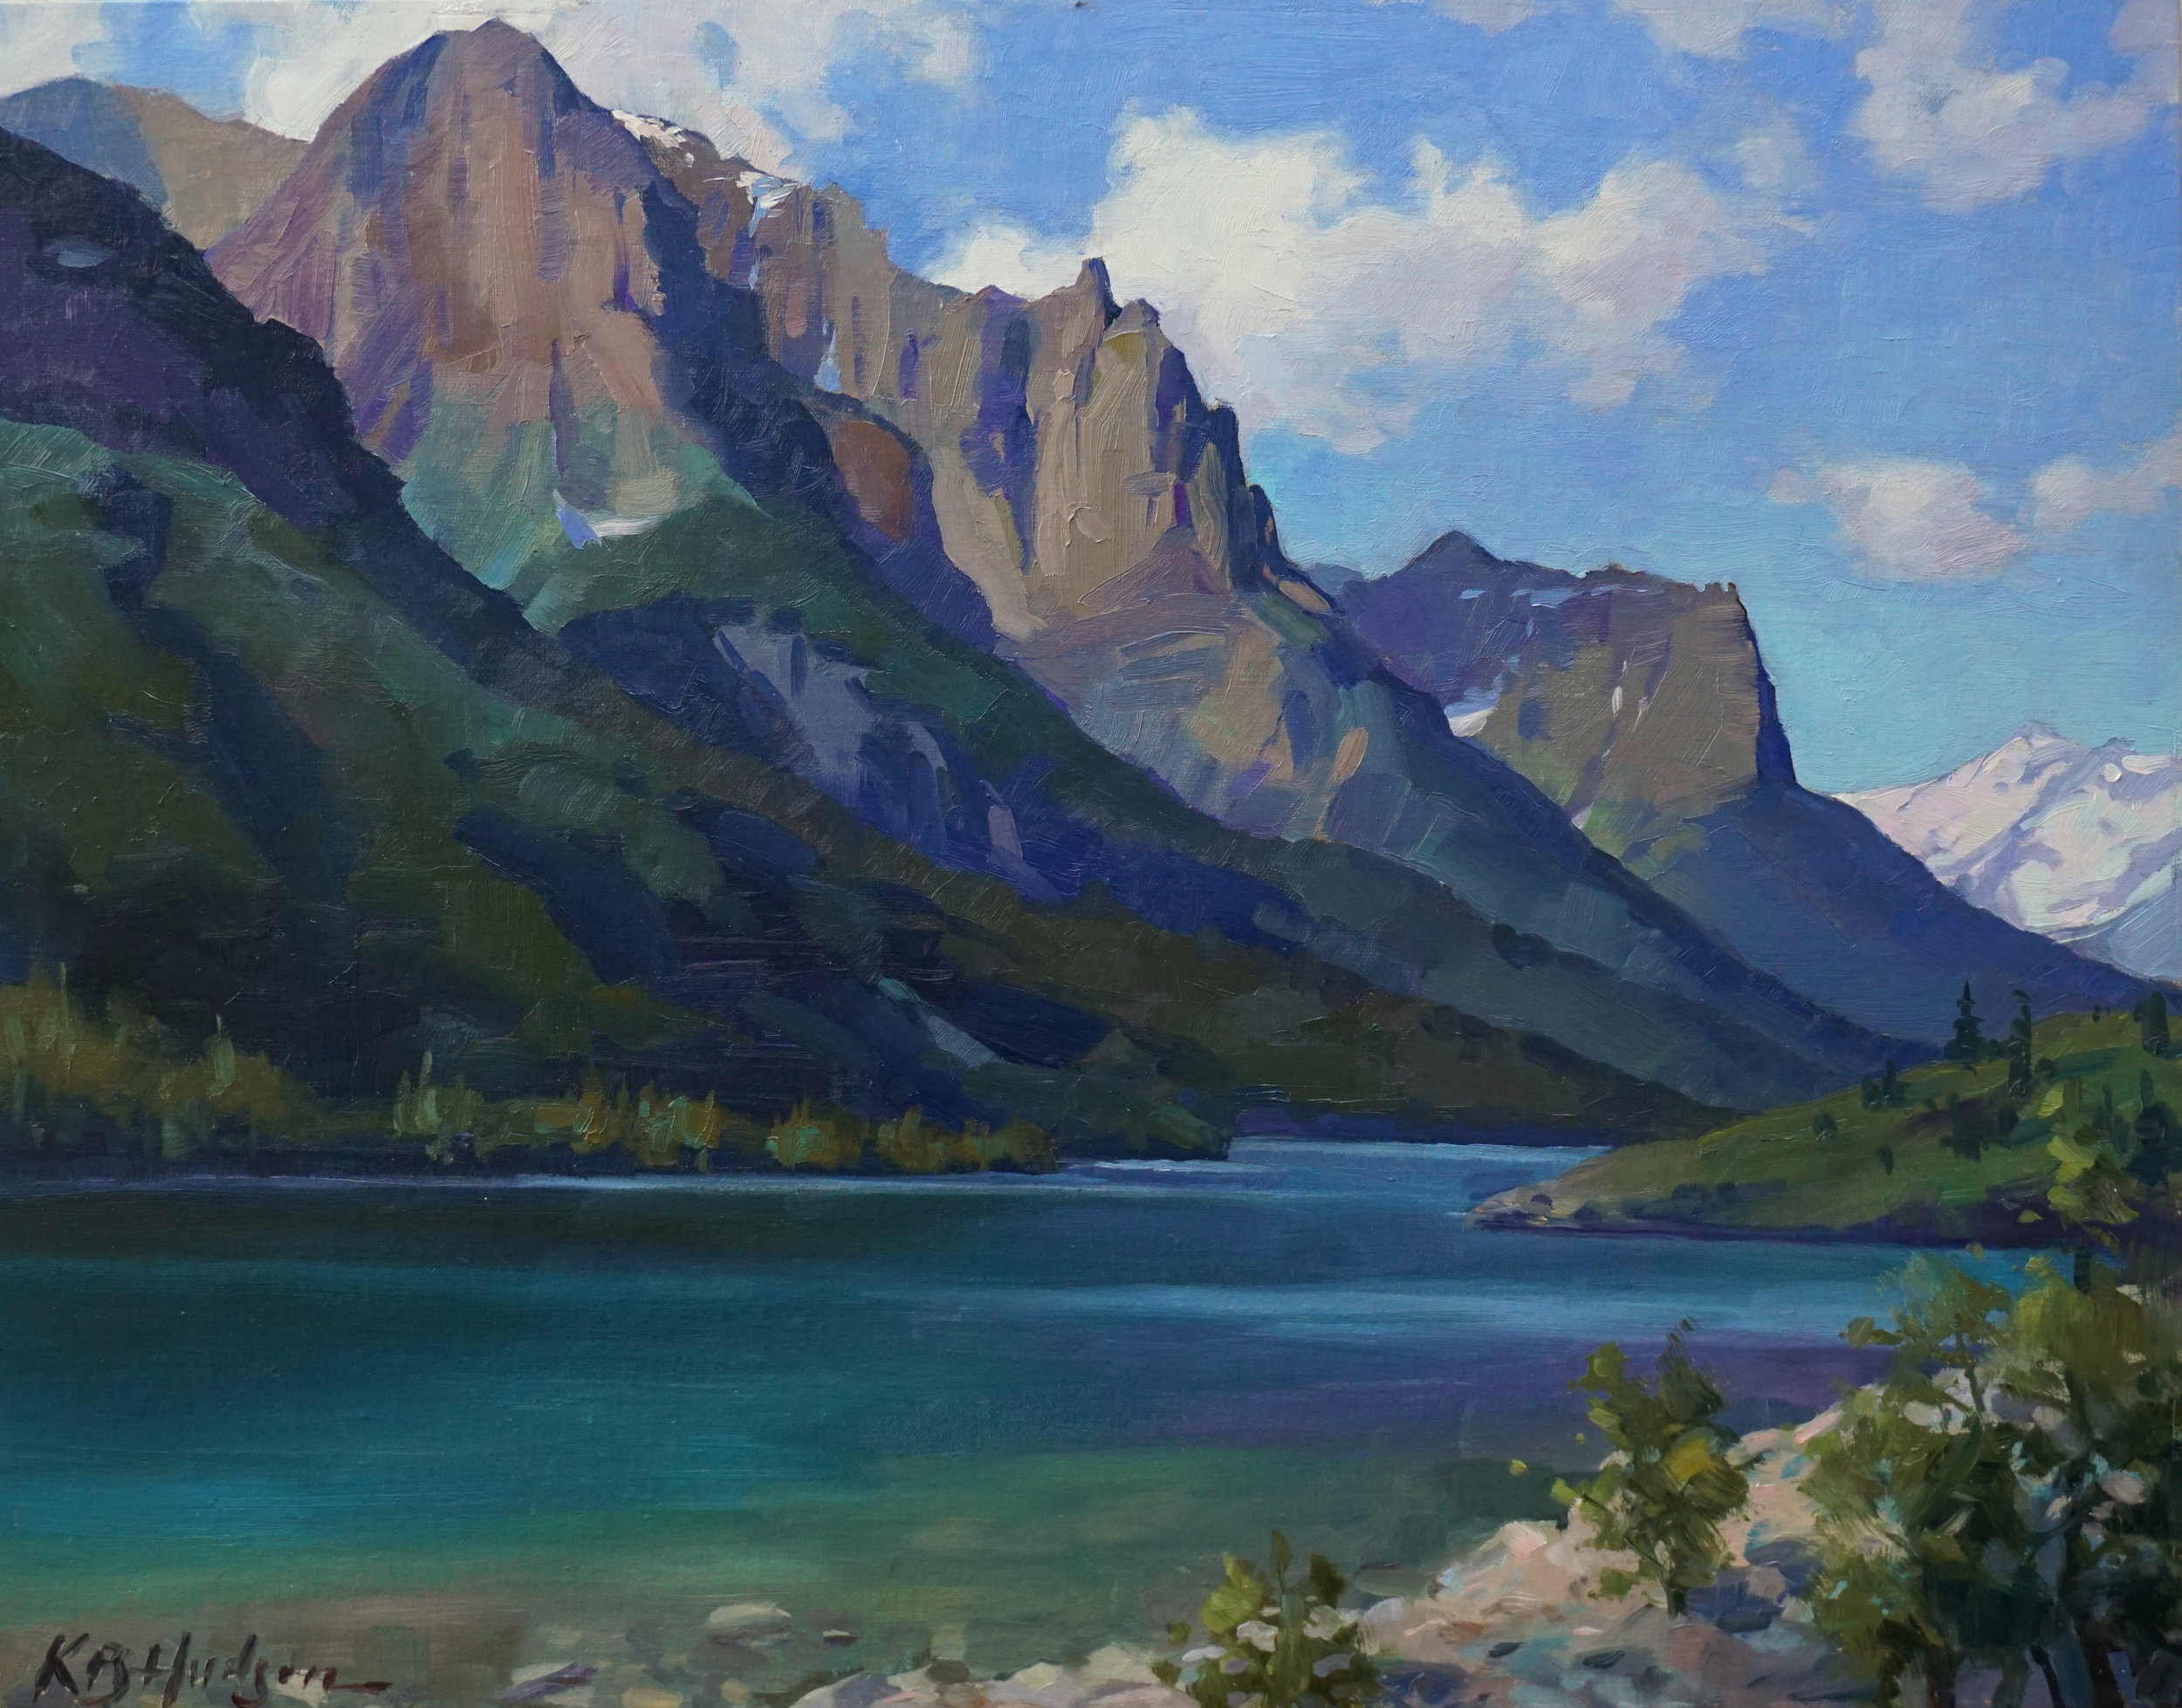 """""""Morning at St. Mary's Lake,"""" by Kathleen B. Hudson, 2016, oil on linen, 14 x 18 in."""